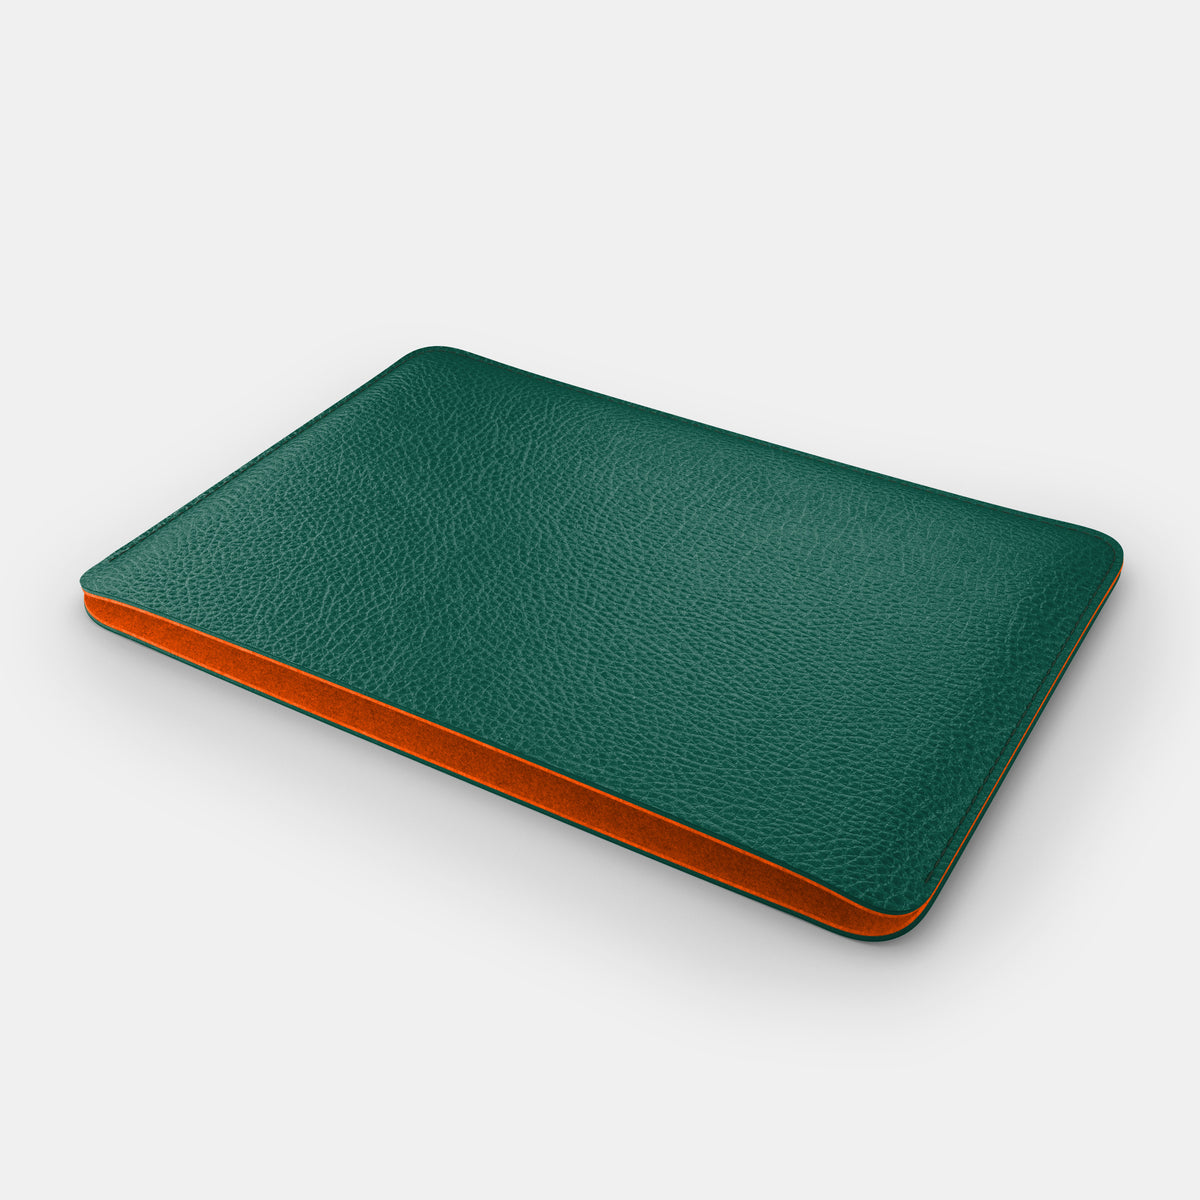 iPad Sleeve - Avocado and Orange - RYAN London